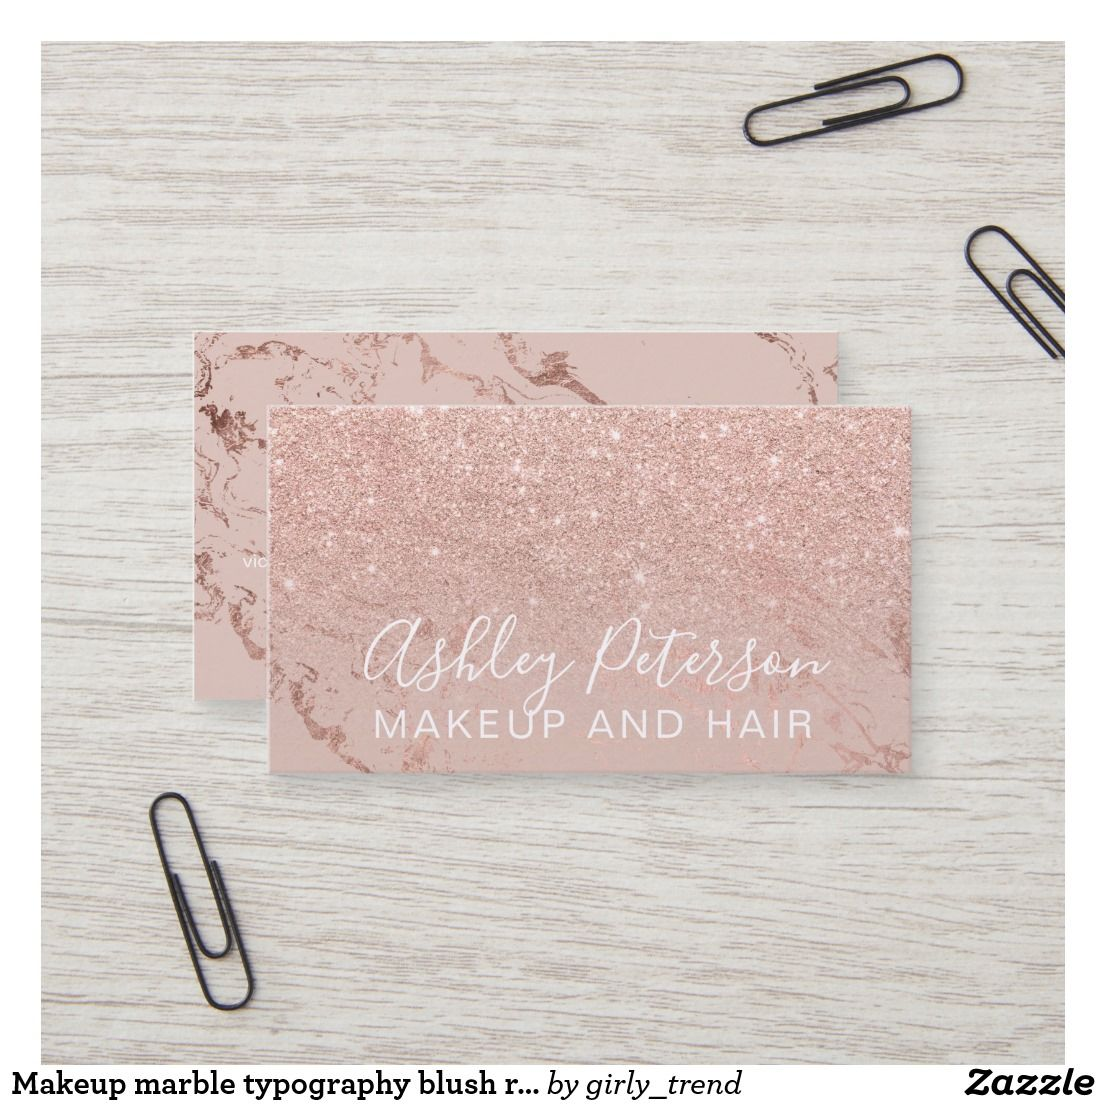 Makeup marble typography blush rose gold glitter business